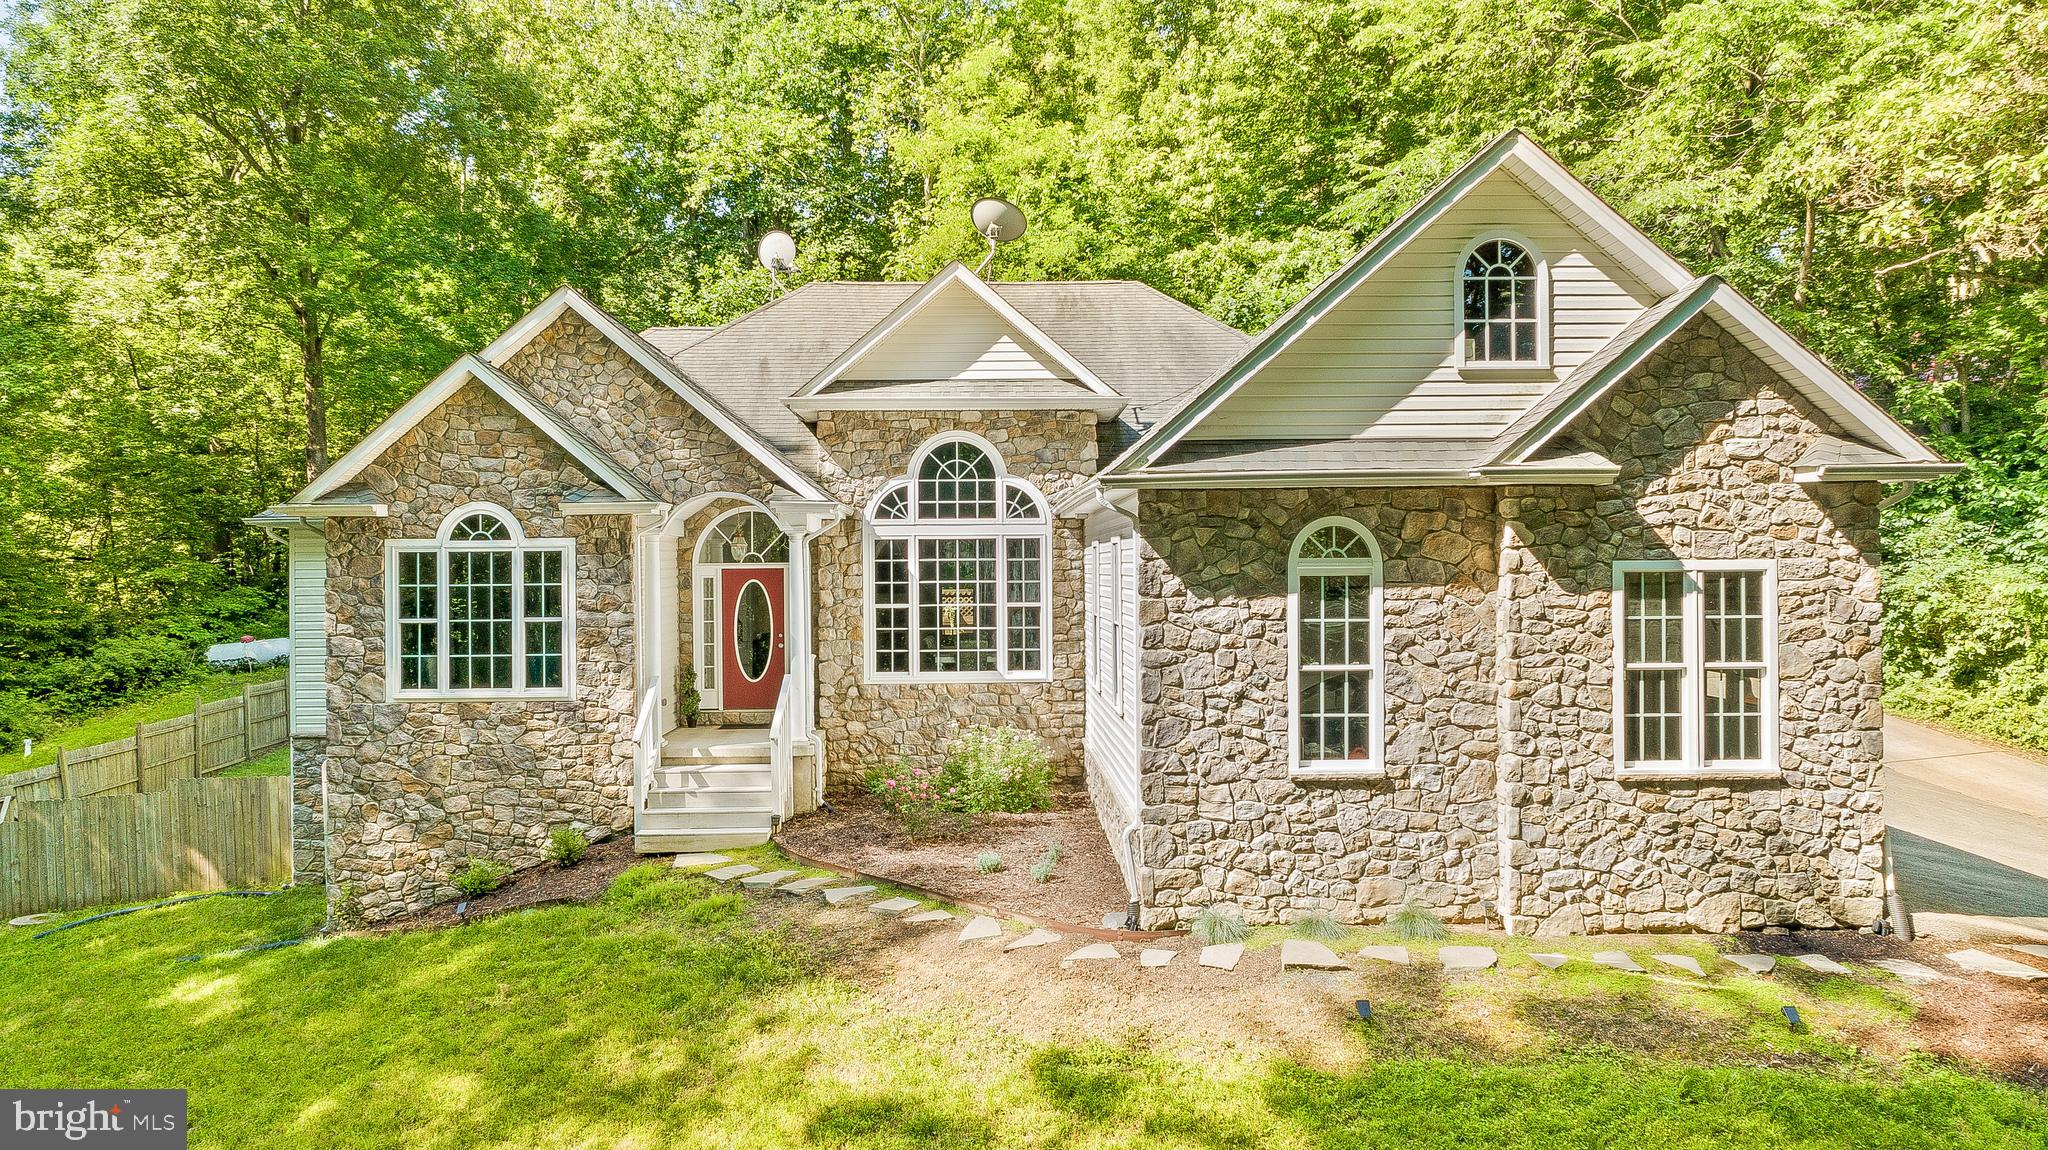 Privacy awaits with this immaculate custom luxury stone rambler nestled in the trees on its 3 acre w